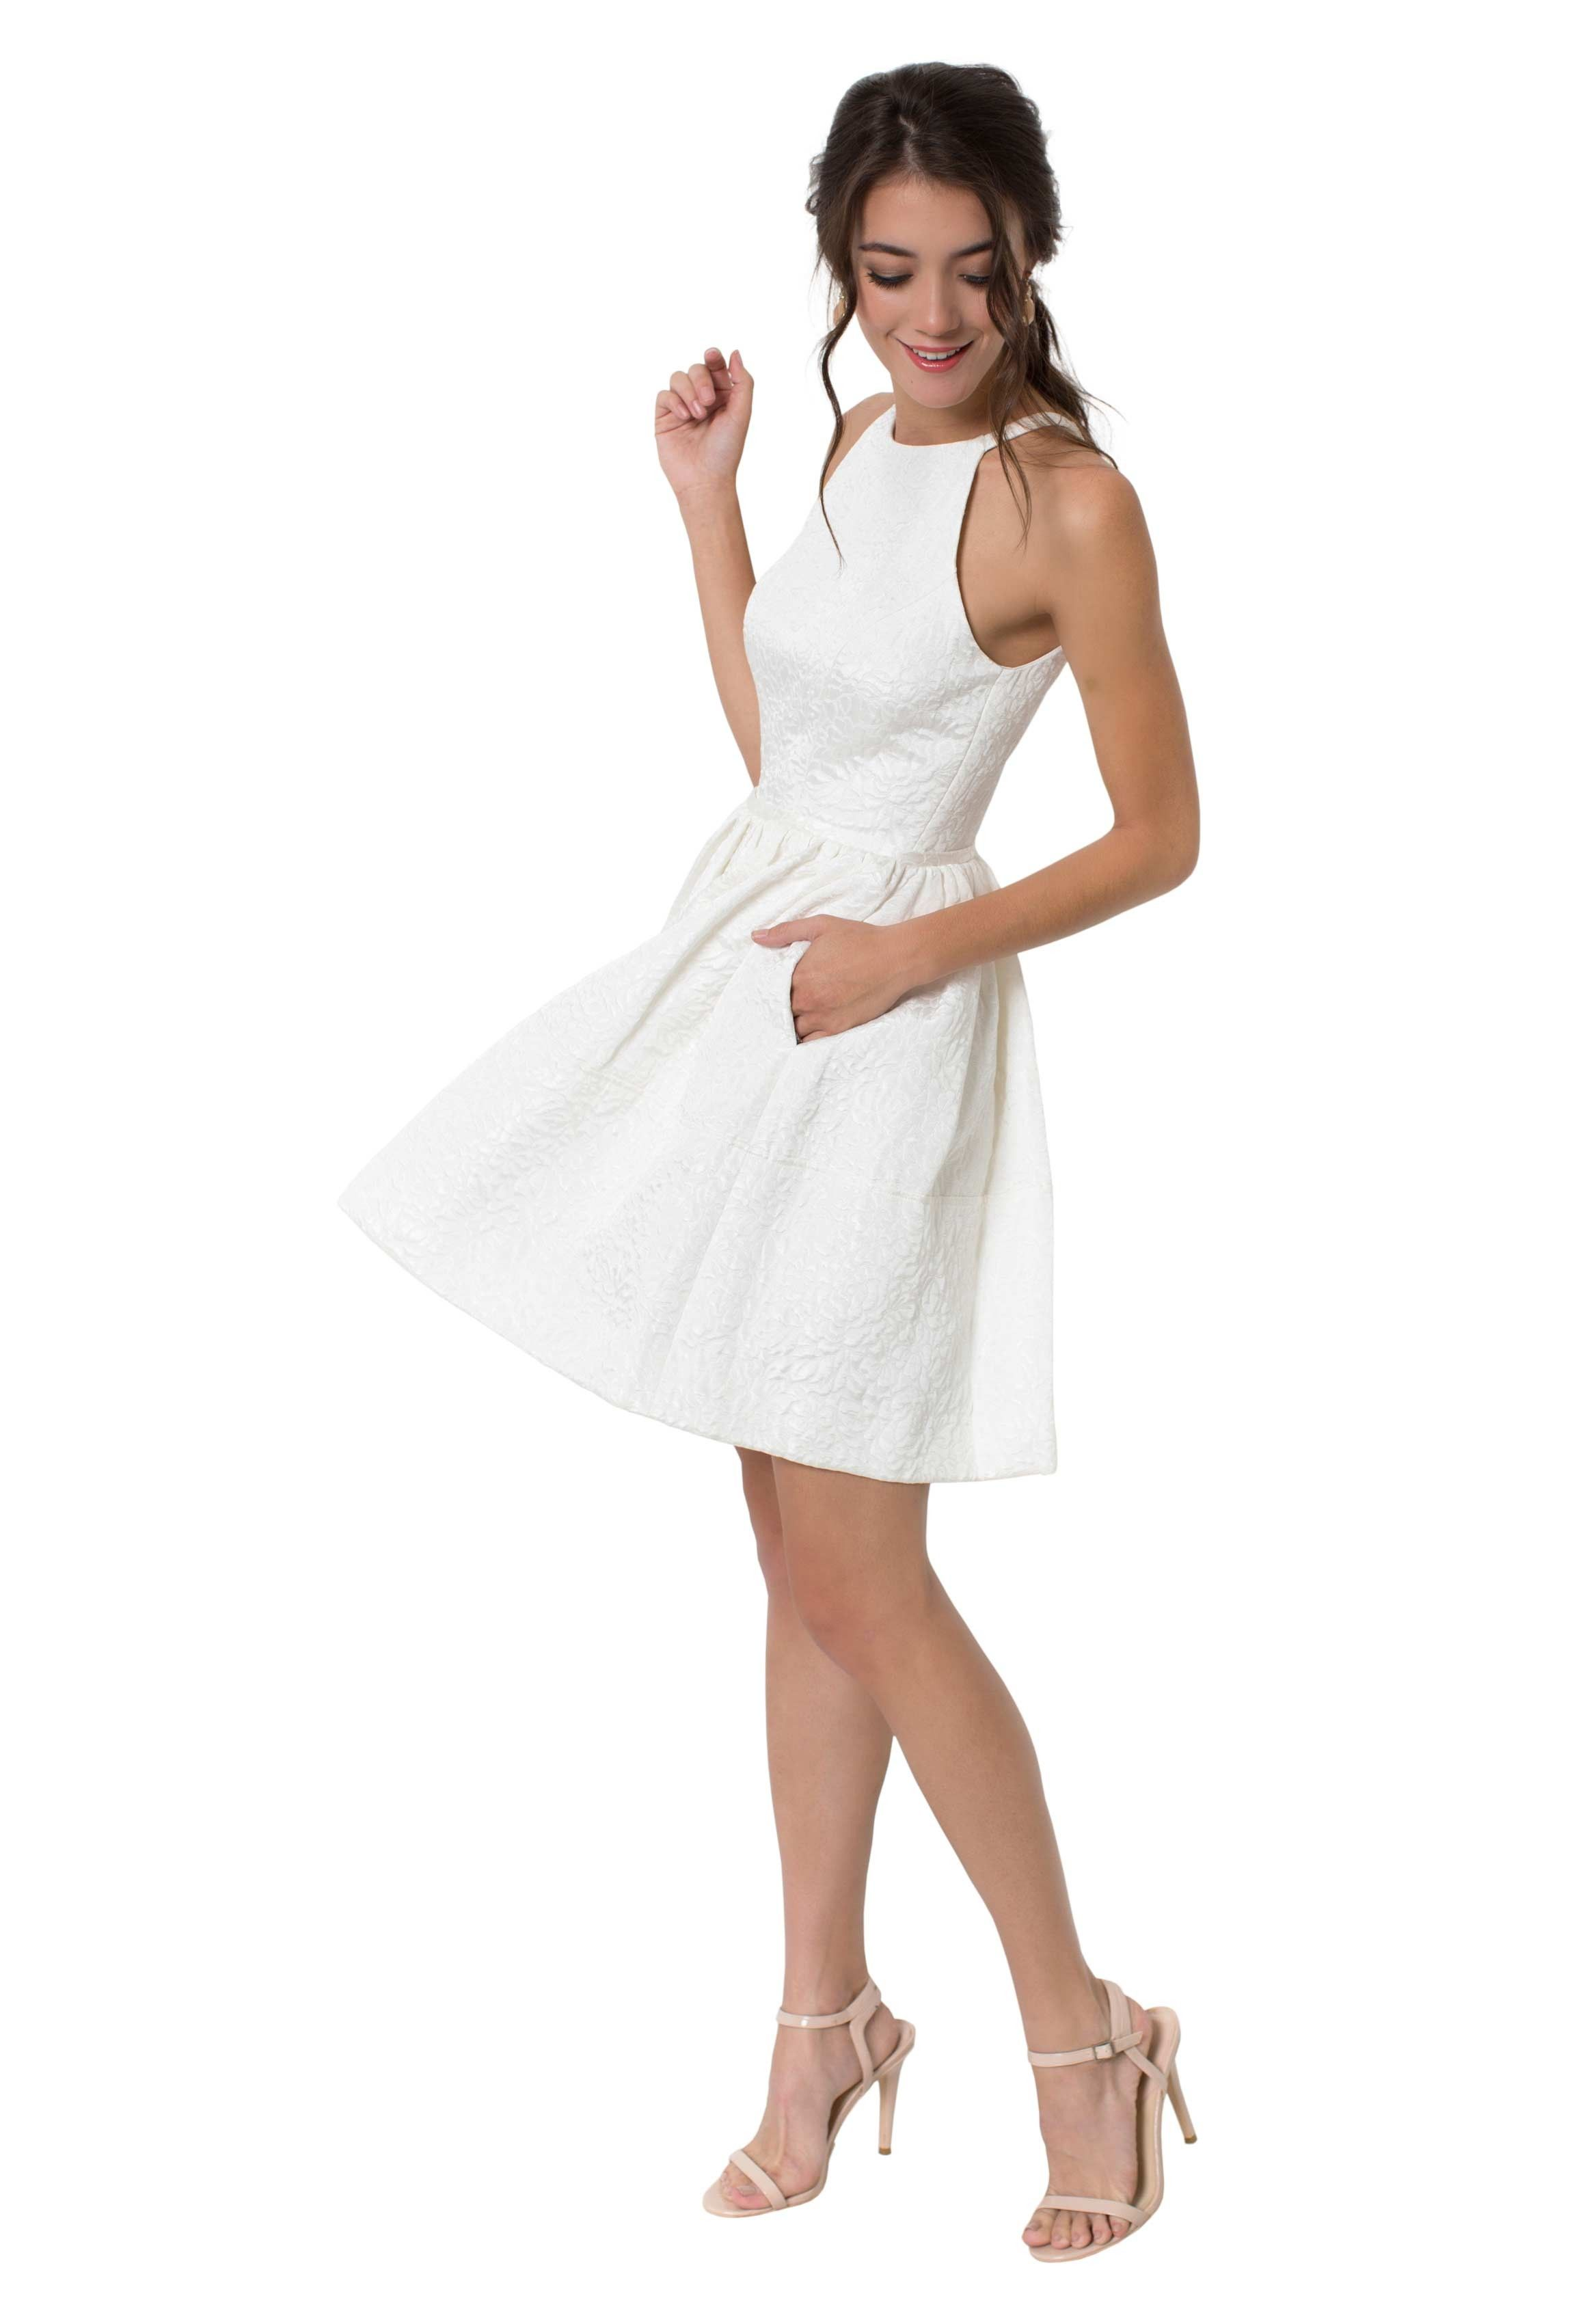 A Short White Halter Top Dress With Full Skirt And Pockets For A Modern Bride Affordable Designer Bri White Halter Dress Short White Dress Short Wedding Dress